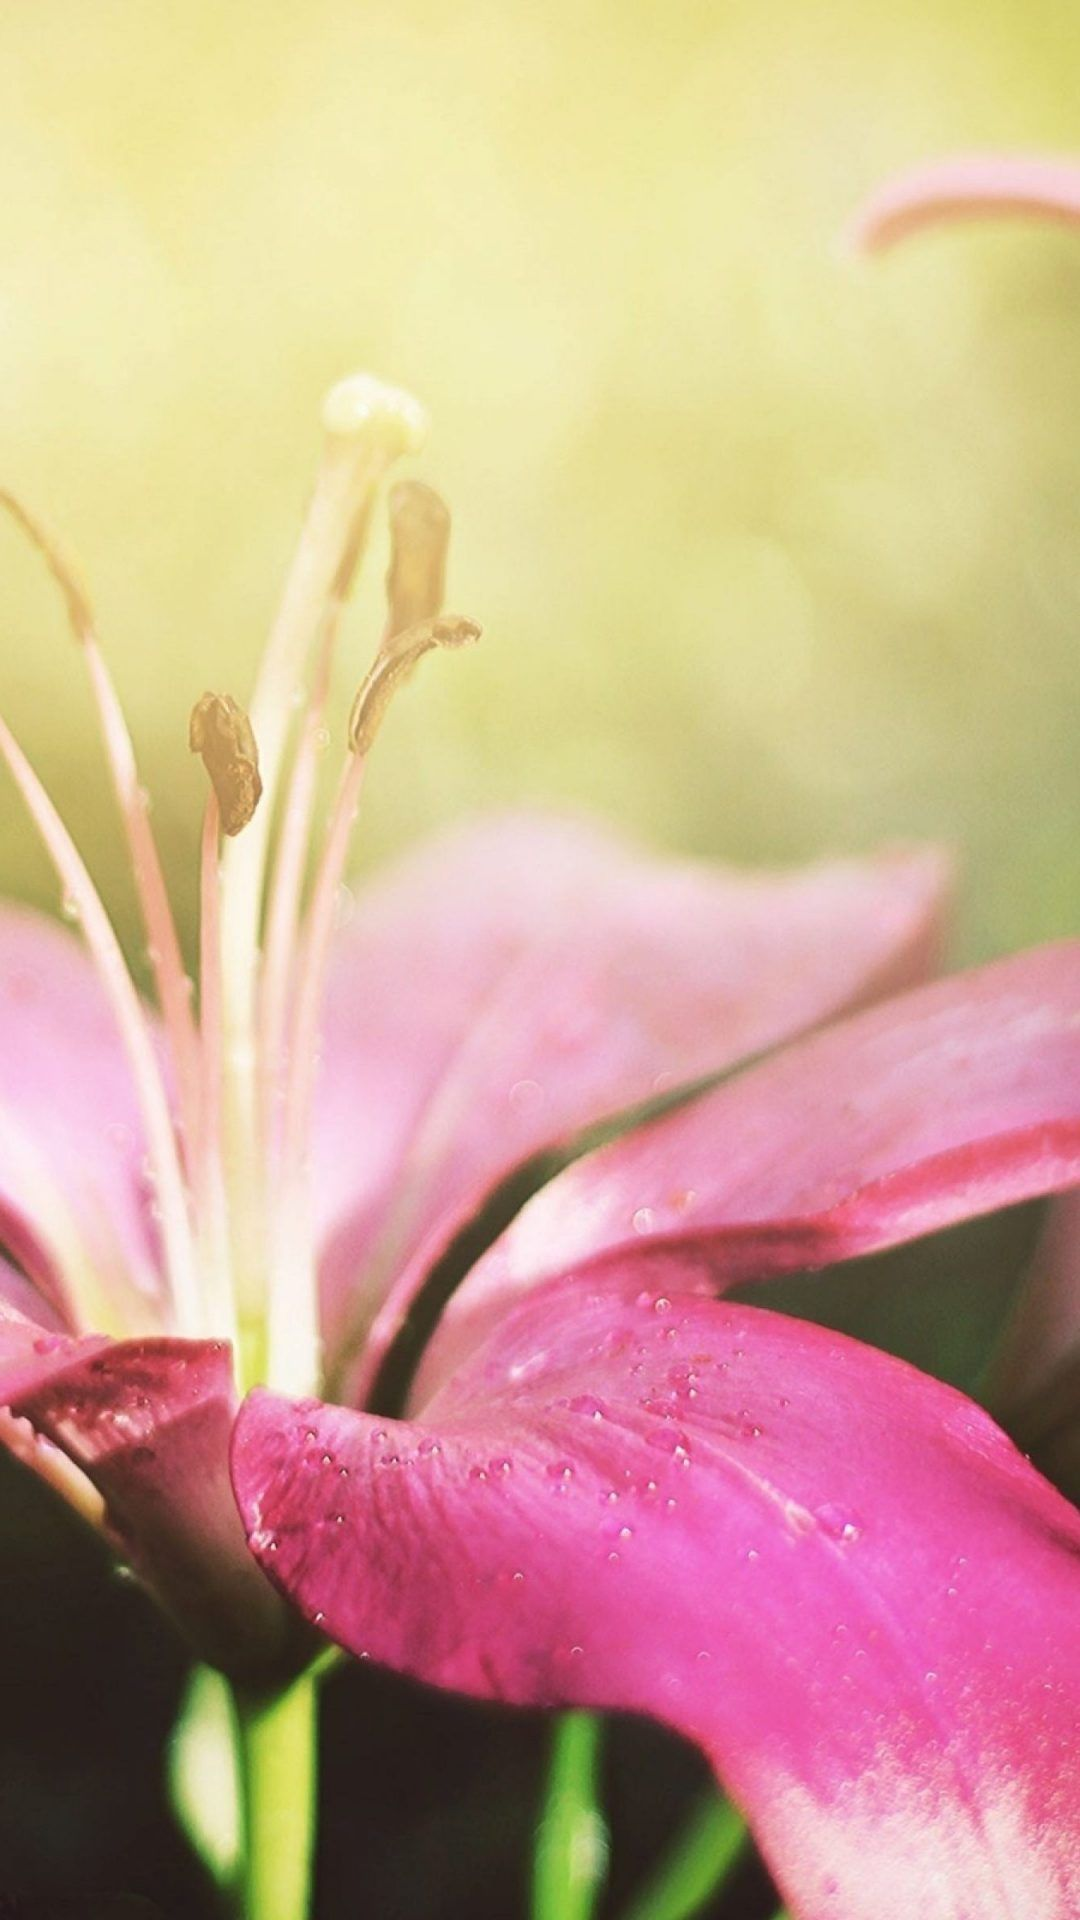 Pink Lily Flower Ultra Hd Wallpaper For Iphone S Plus